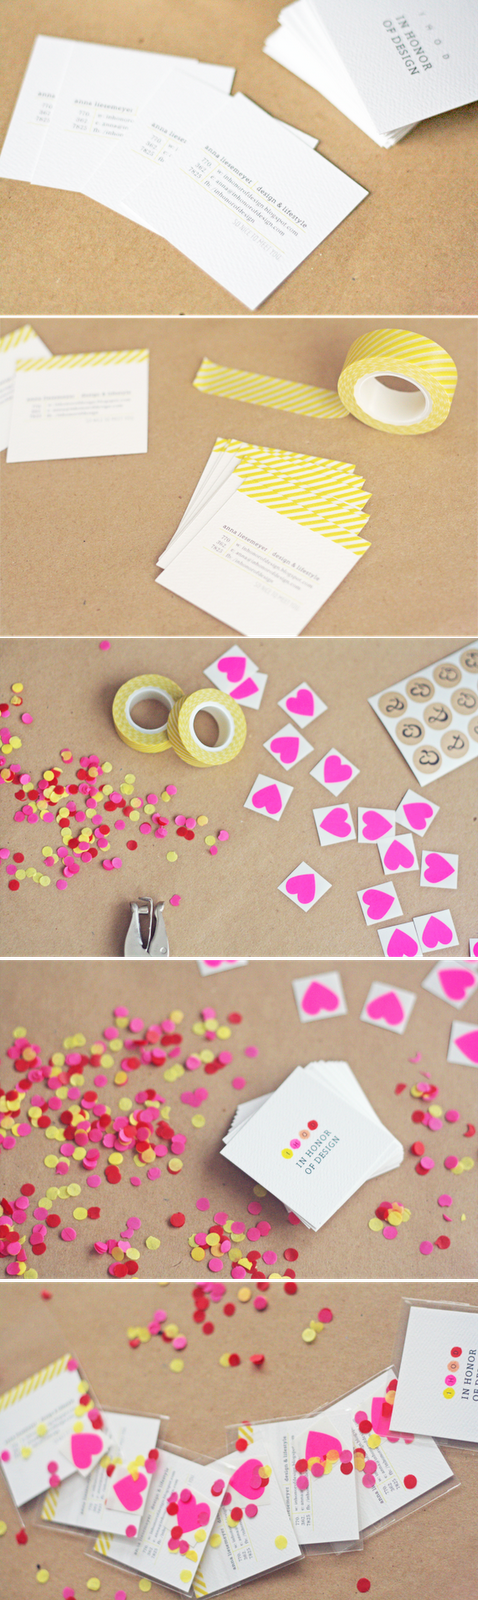 Diy business cards from in honor of design branding tips business i am so flattered to be a part of in honor of designs diy business card project you must check out how chic she was able to make a do it yourself reheart Choice Image